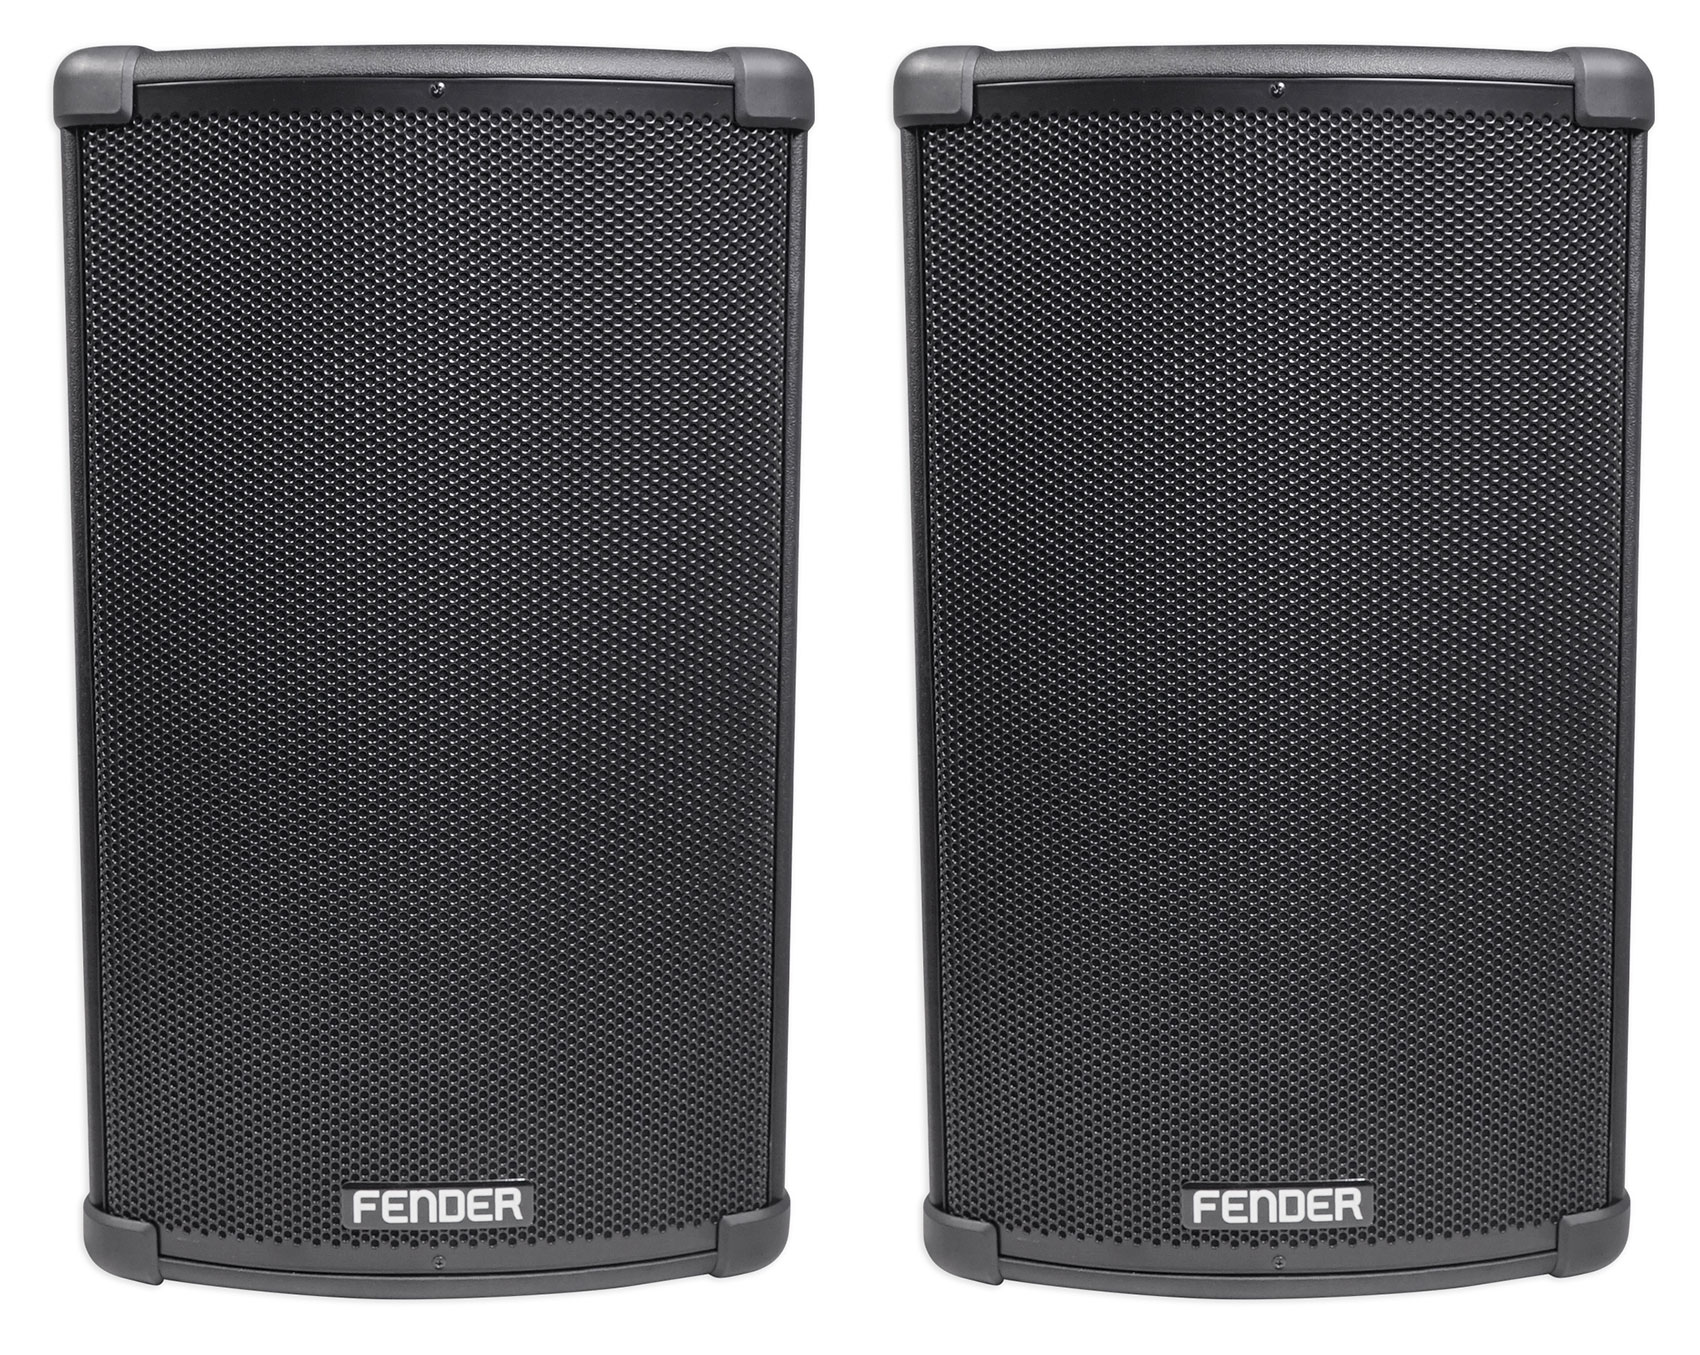 "(2) FENDER FIGHTER 12"" 2200w Powered DJ PA Speakers w  Bluetooth, Wood Enclosure by Fender"